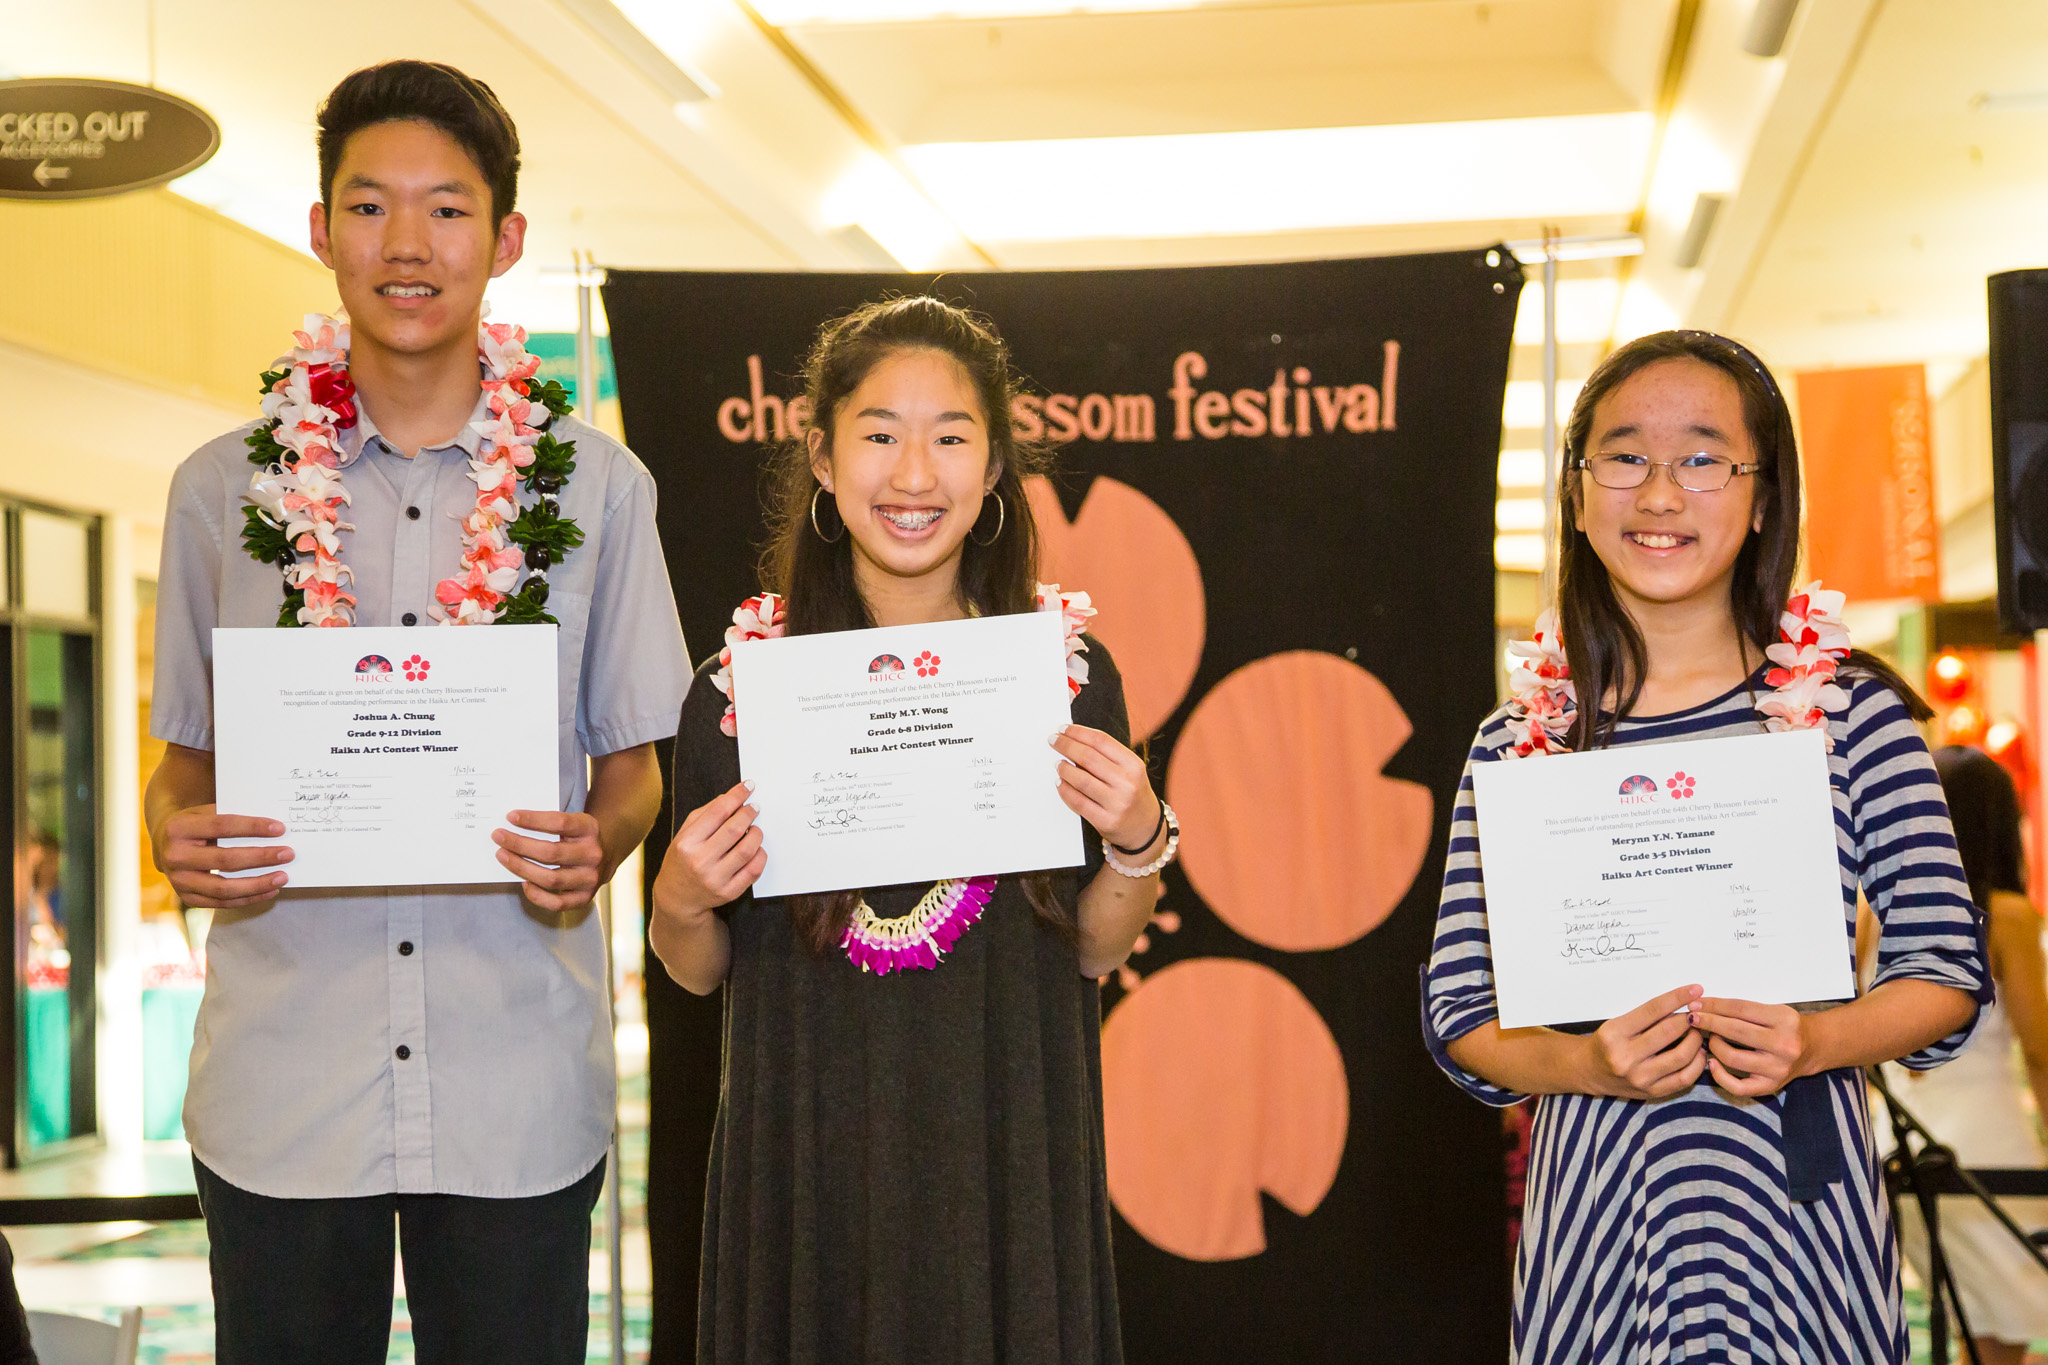 From left: Joshua Chung of Iolani School, Emily Wong of Iolani School, and Merynn Yamane of Kaneohe Elementary